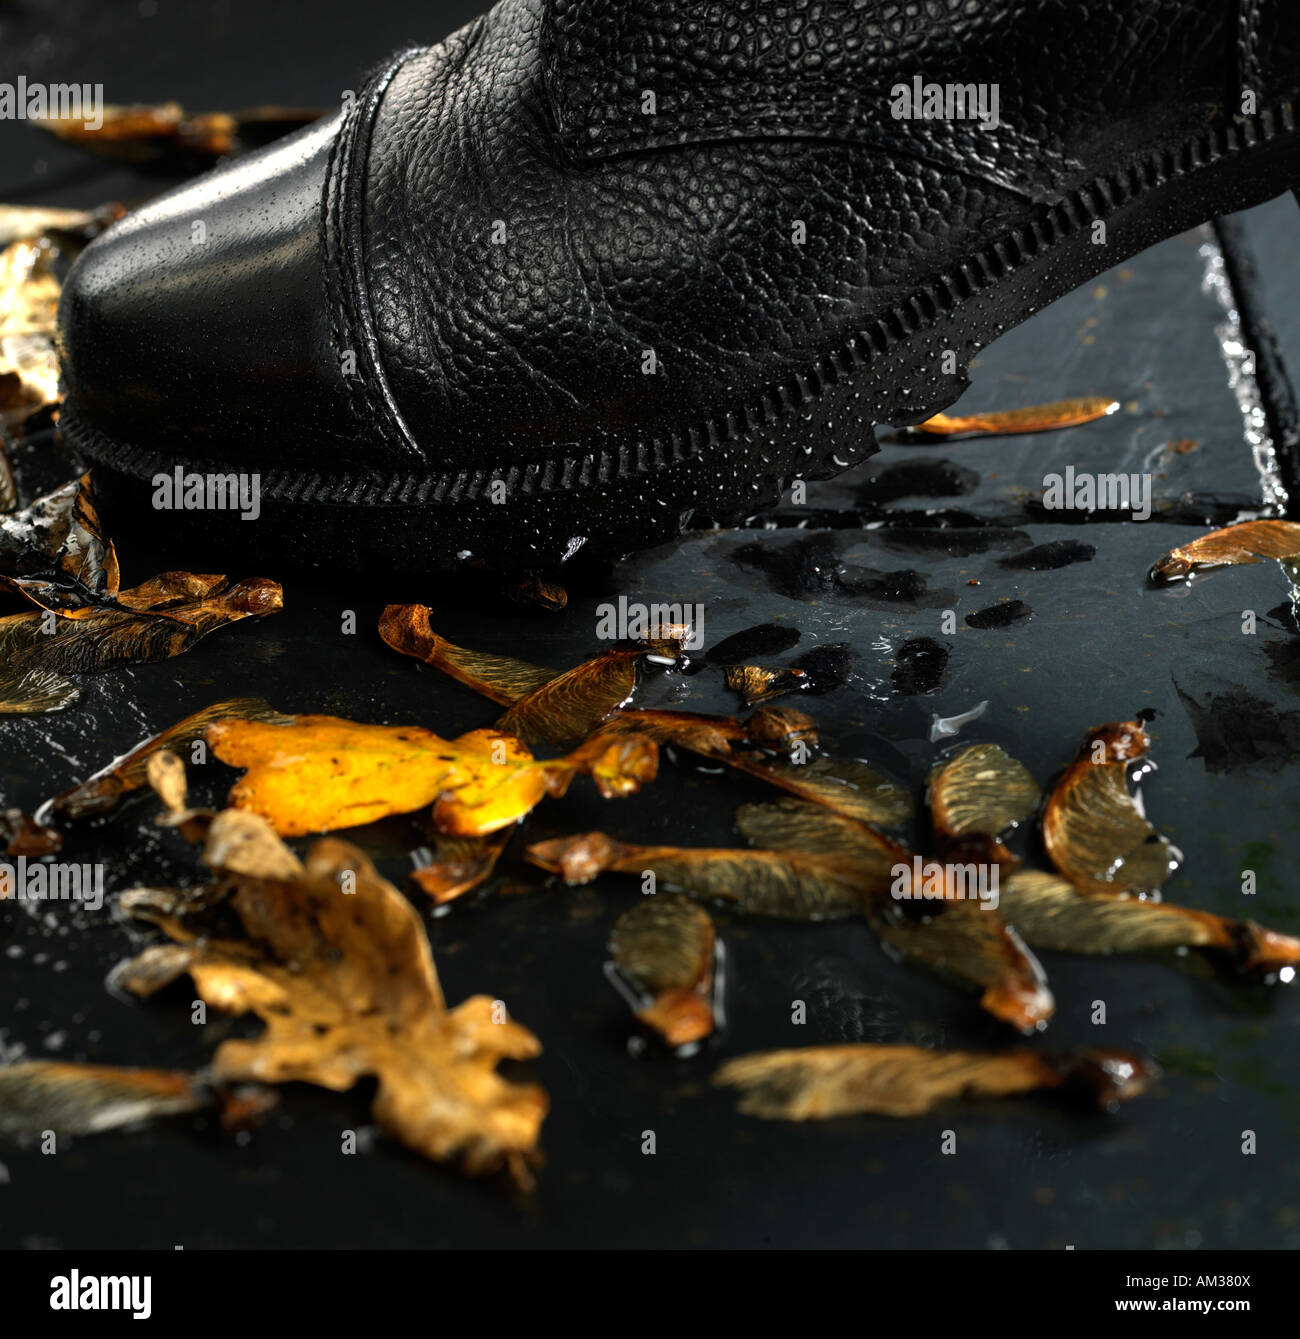 A 0455 black army boot stamping on wet autumn pavement - Stock Image